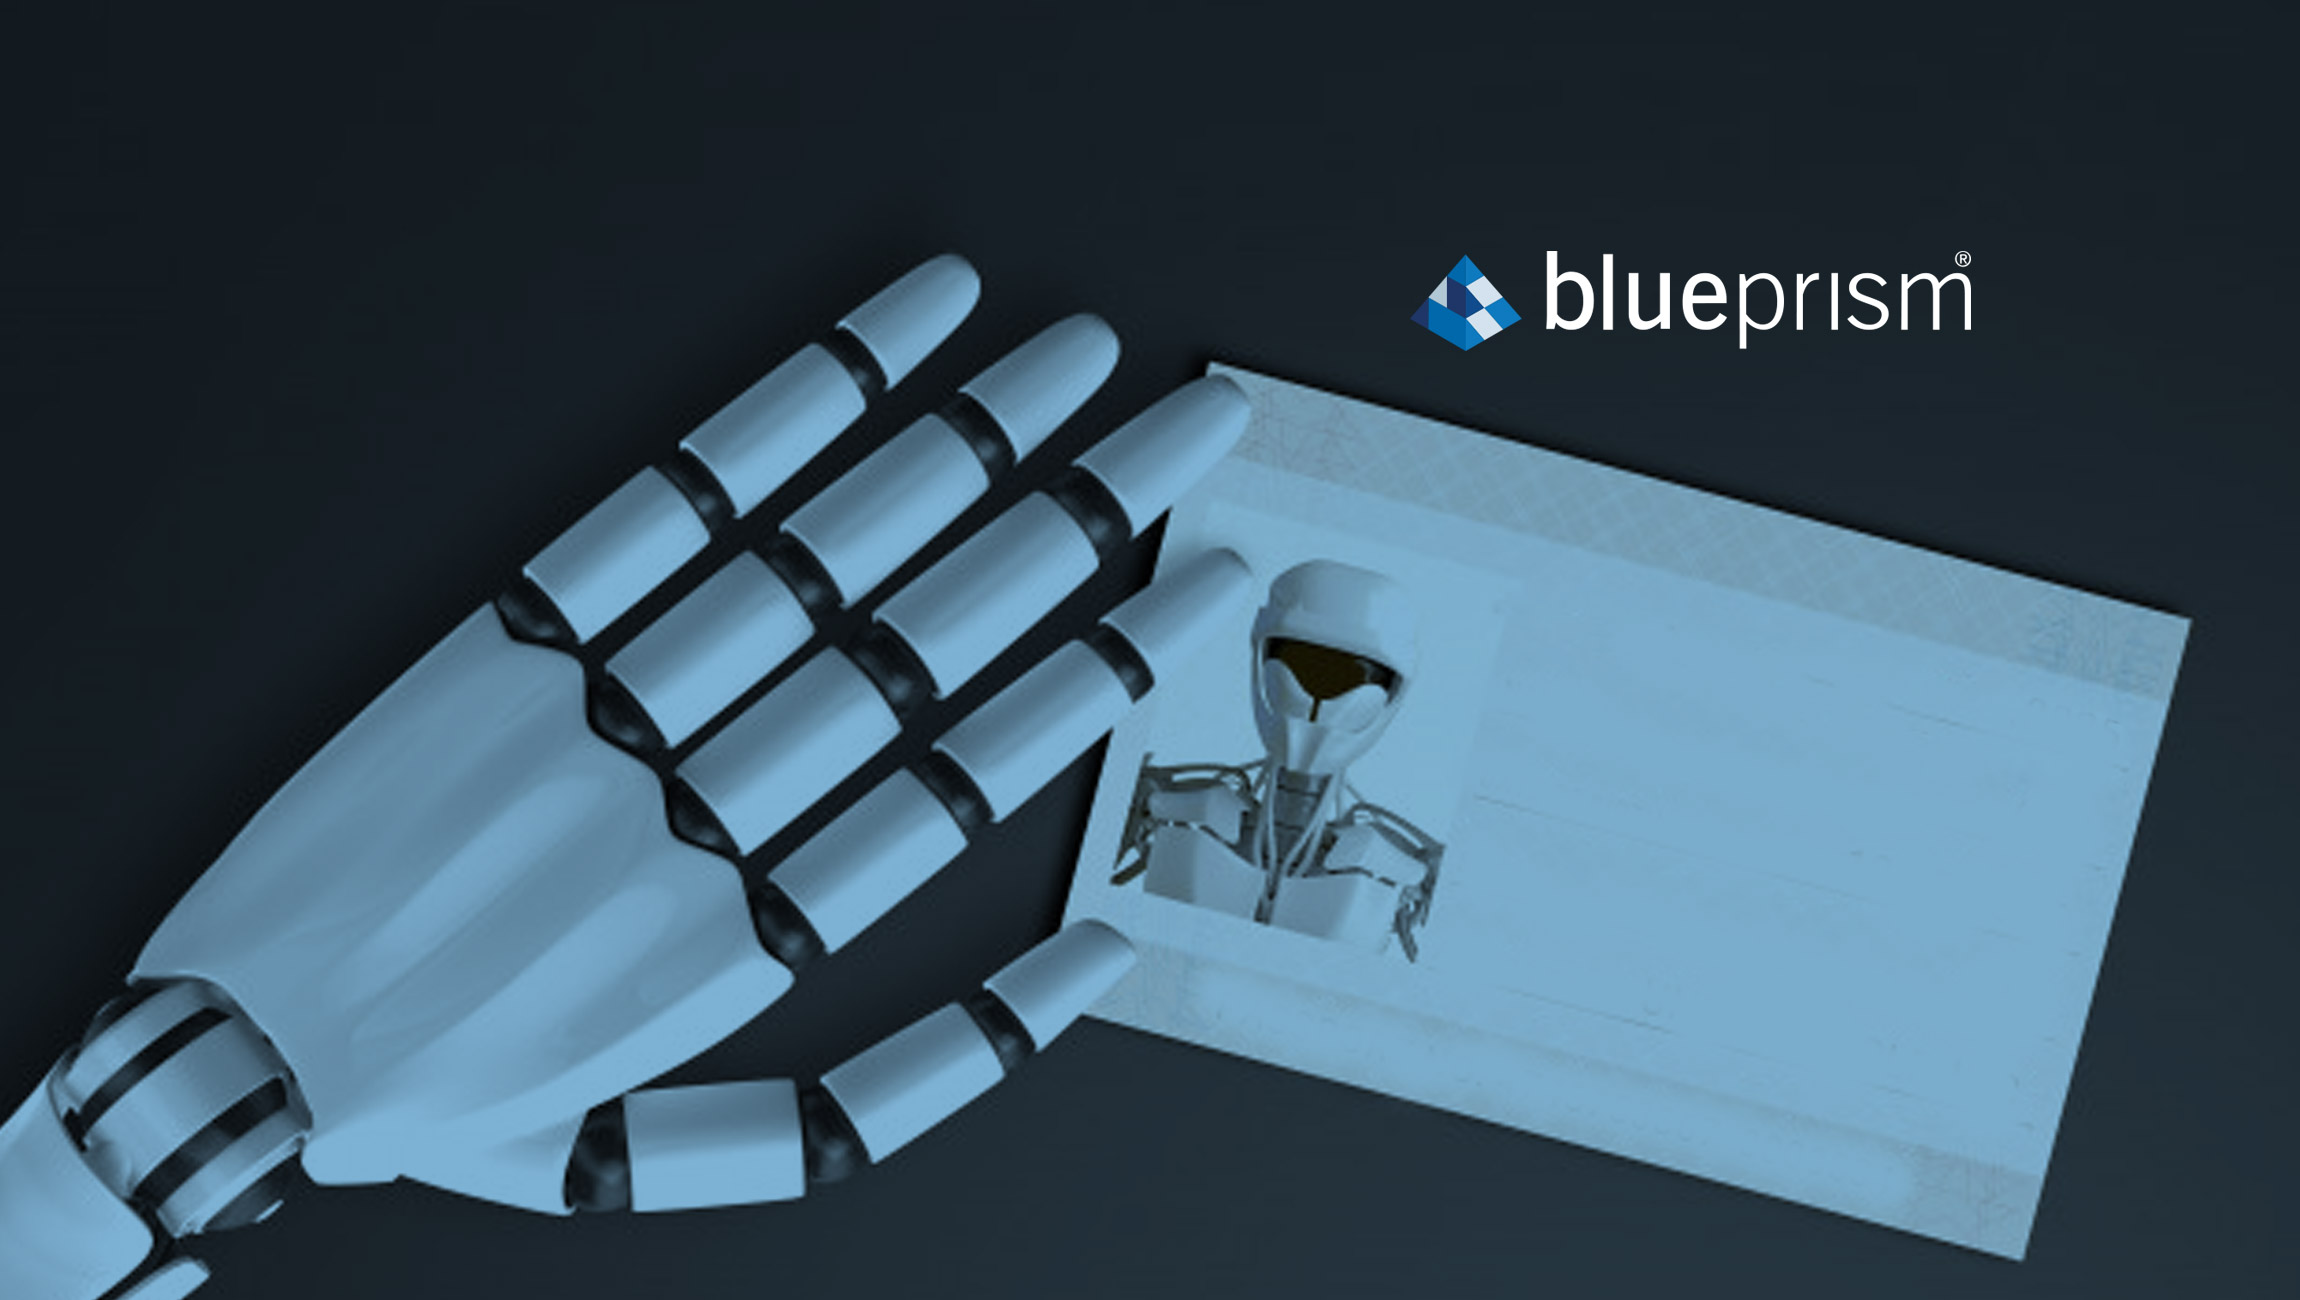 convedo Selects Blue Prism to Bring Intelligent Automation and Document Processing Services to the Cloud